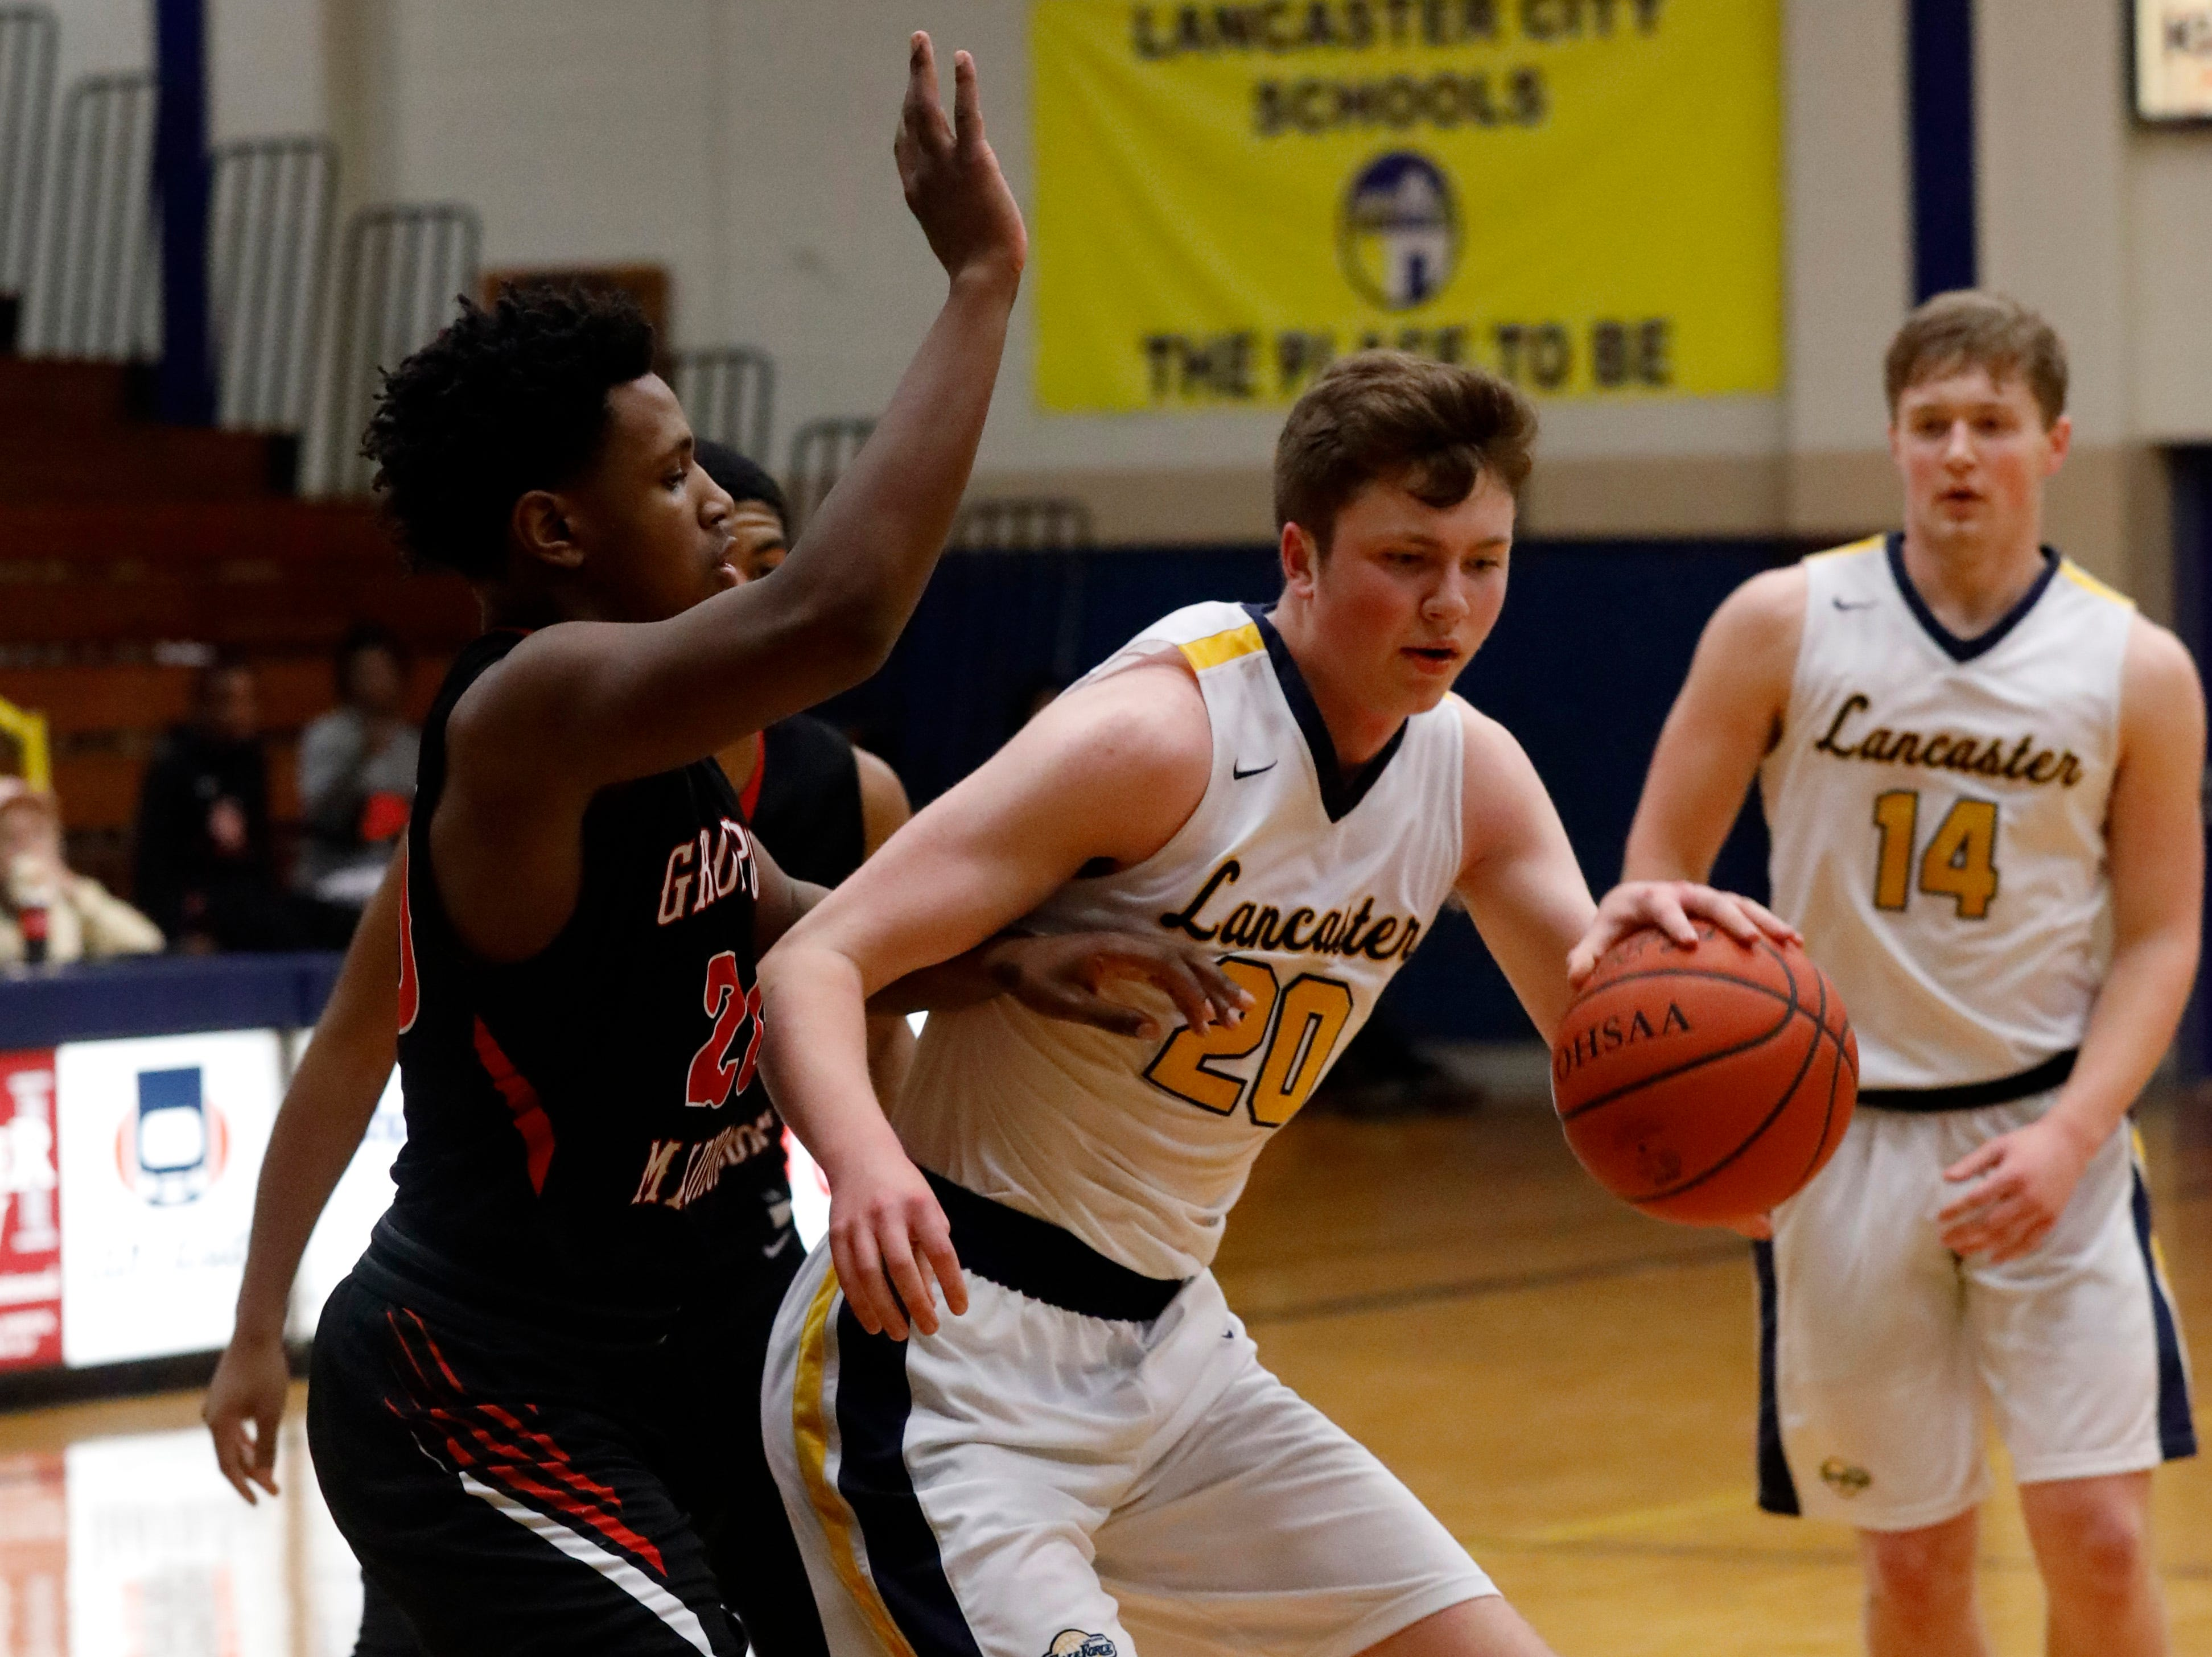 Lancaster lost to Groveport Madison 47-40 Tuesday night, Feb. 5, 2019, at Lancaster High School in Lancaster.